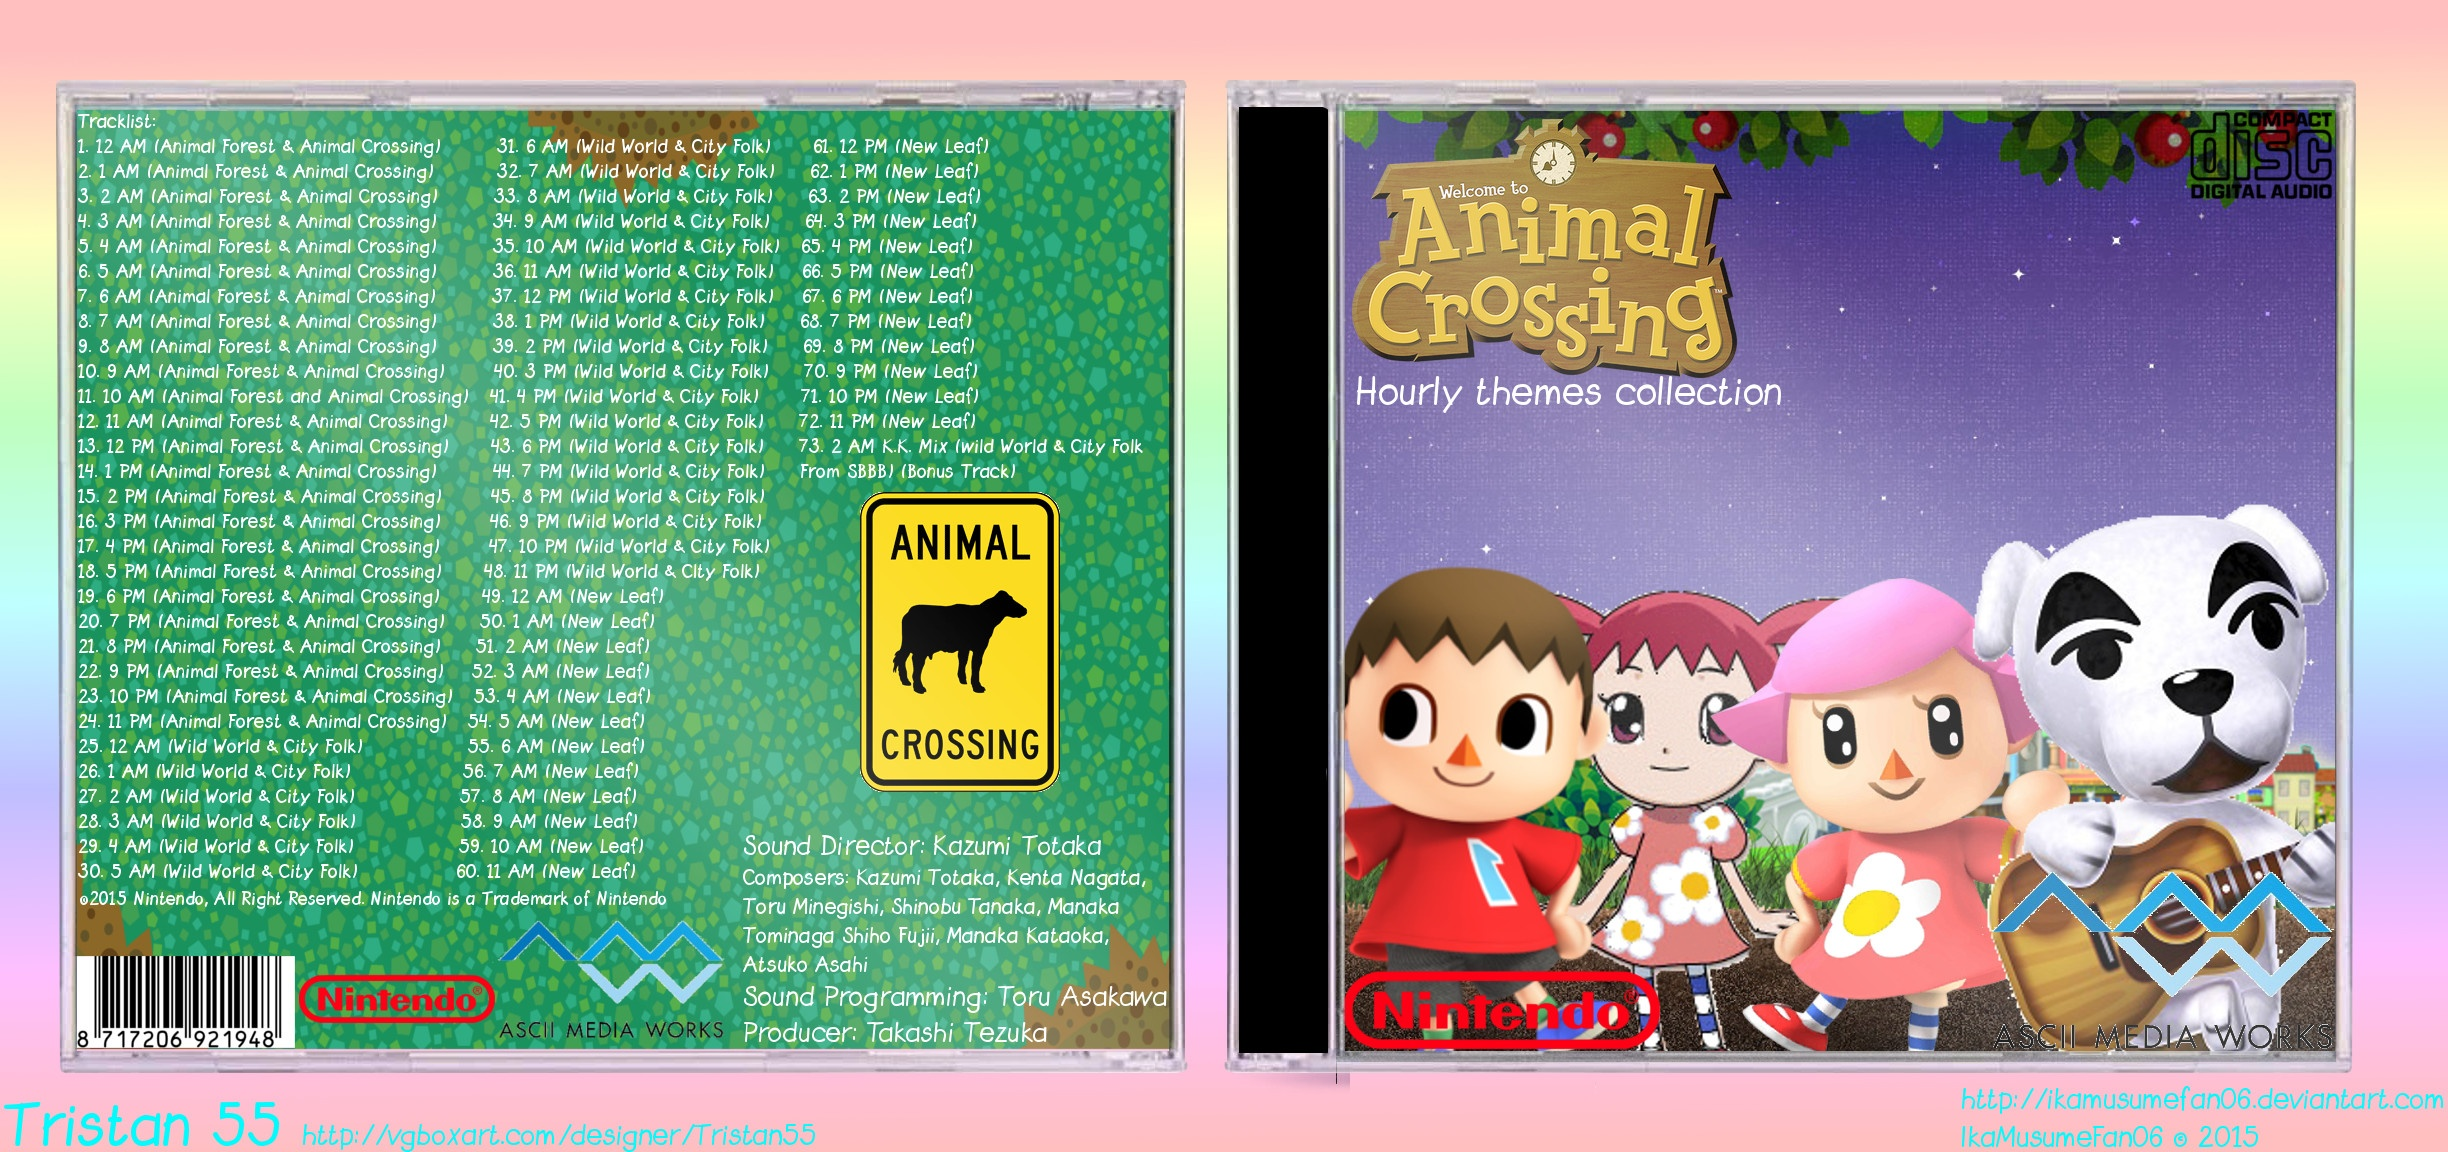 Animal Crossing: Hourly Themes Collection box cover